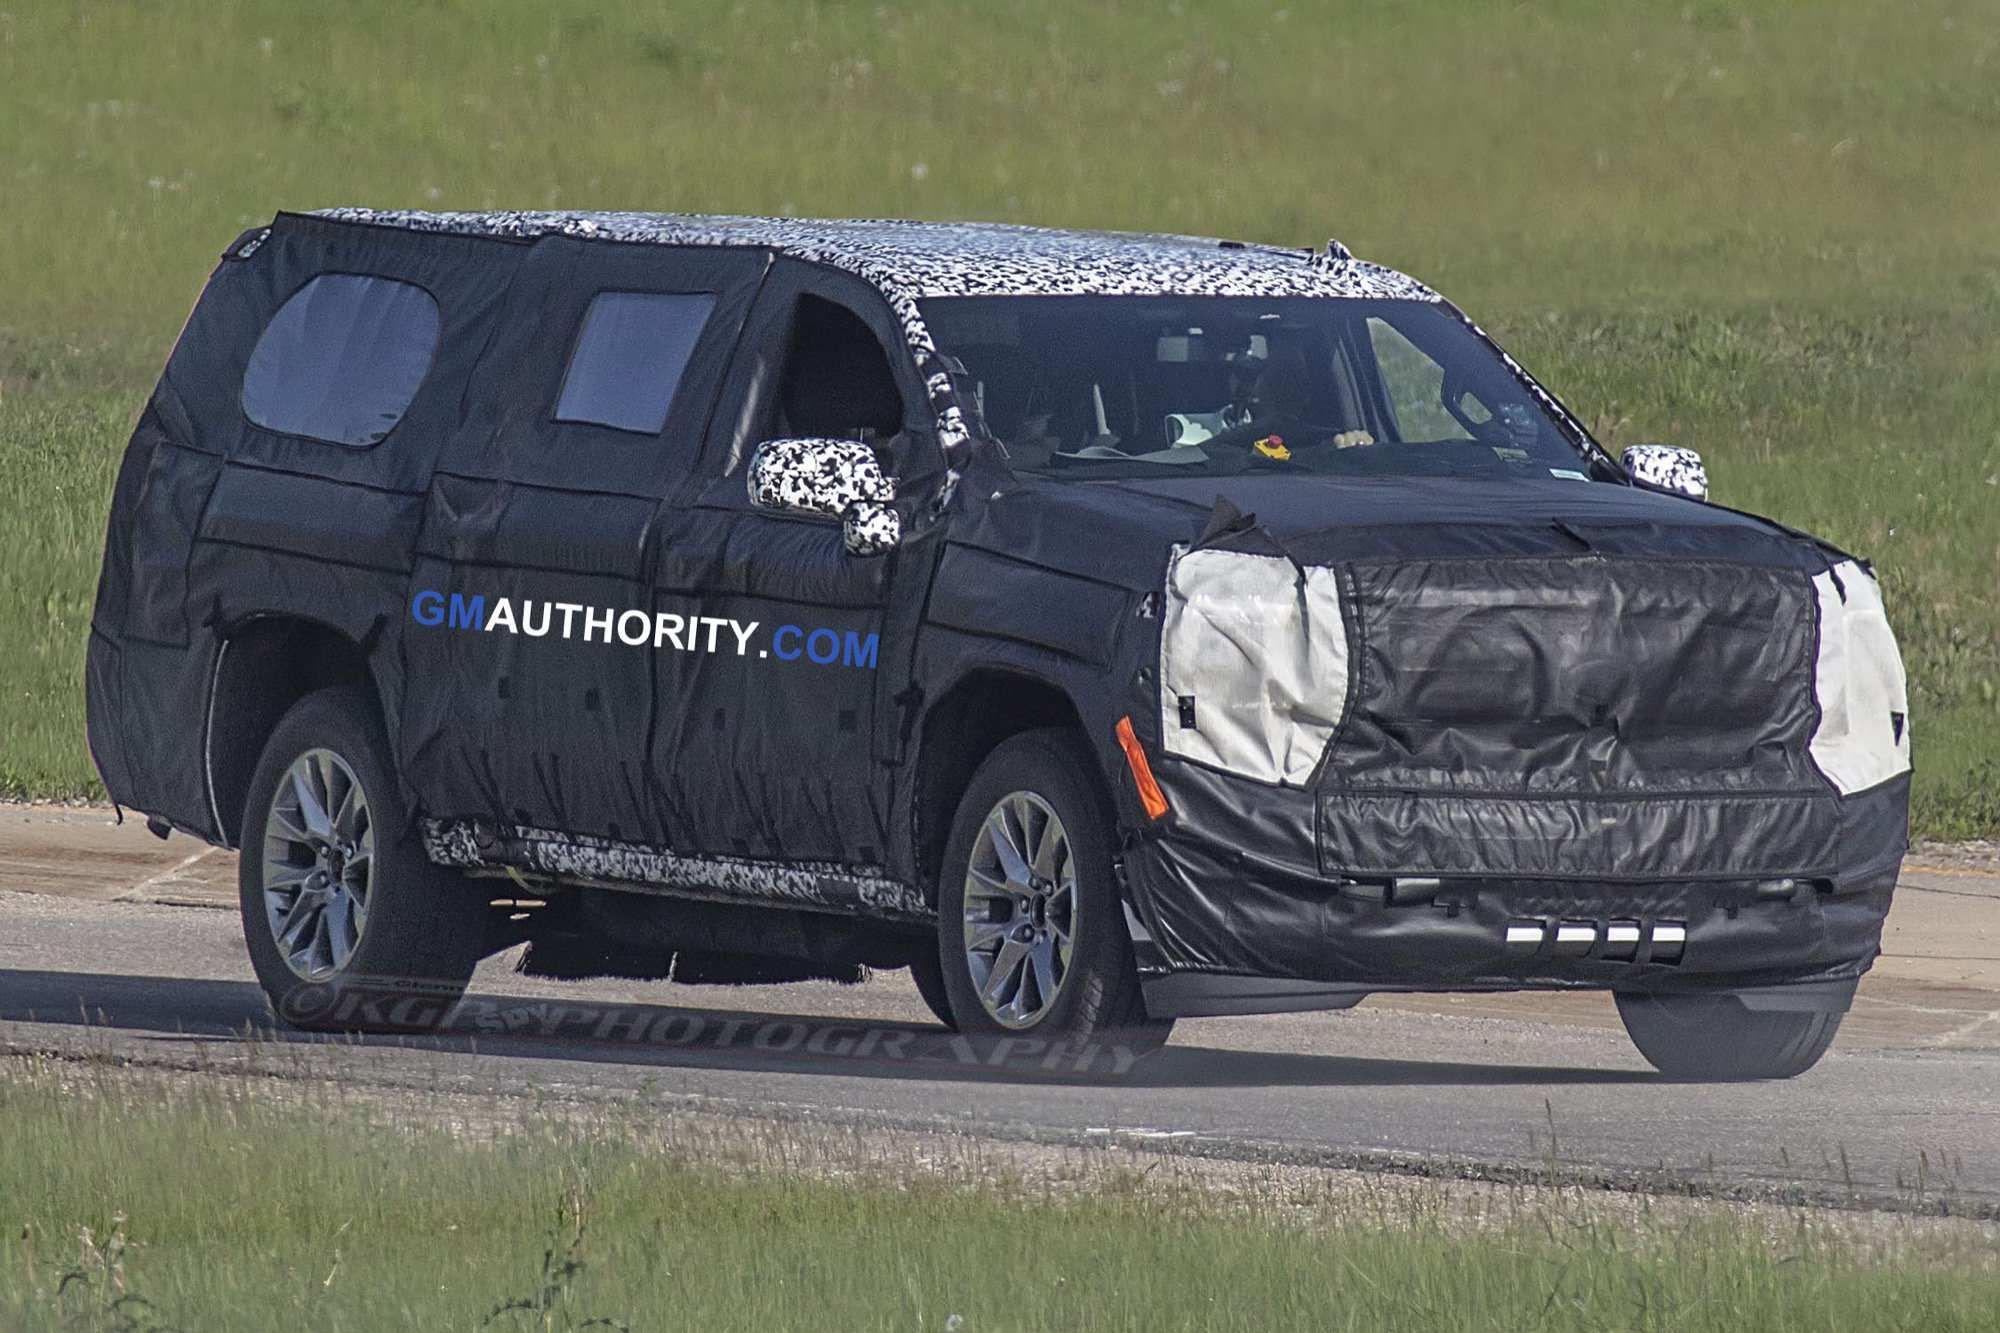 52 All New 2020 Chevy Suburban Z71 Style